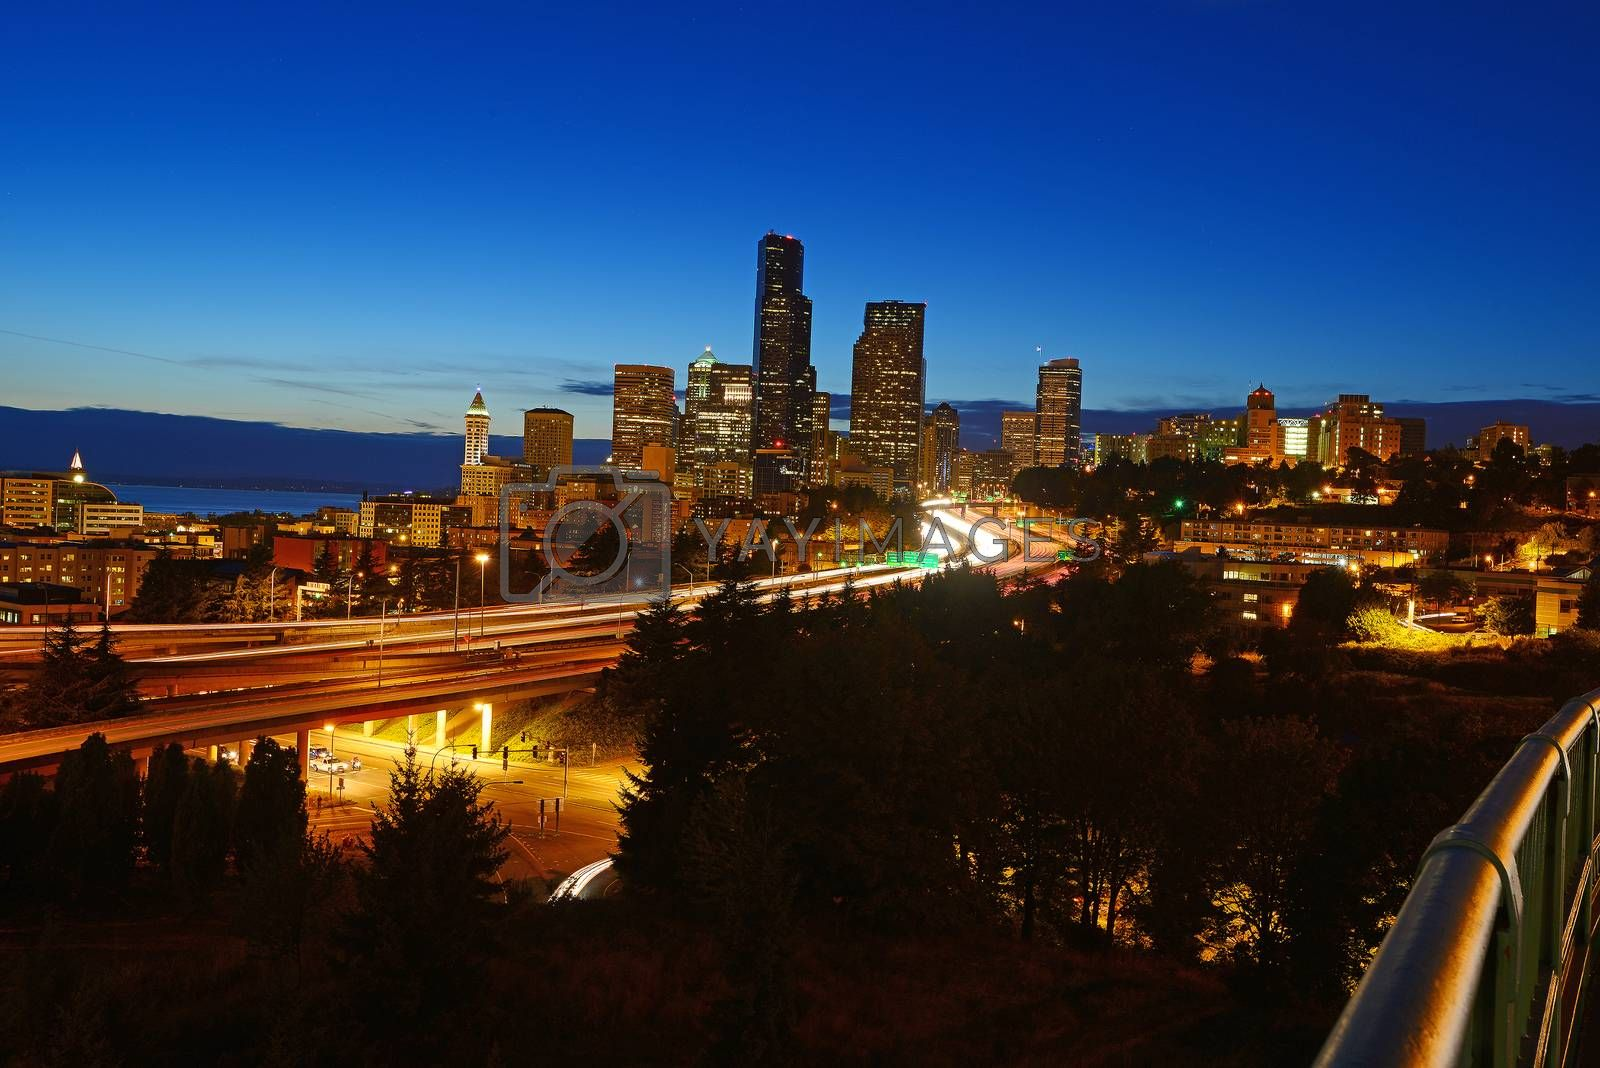 Royalty free image of seattle and highway by porbital